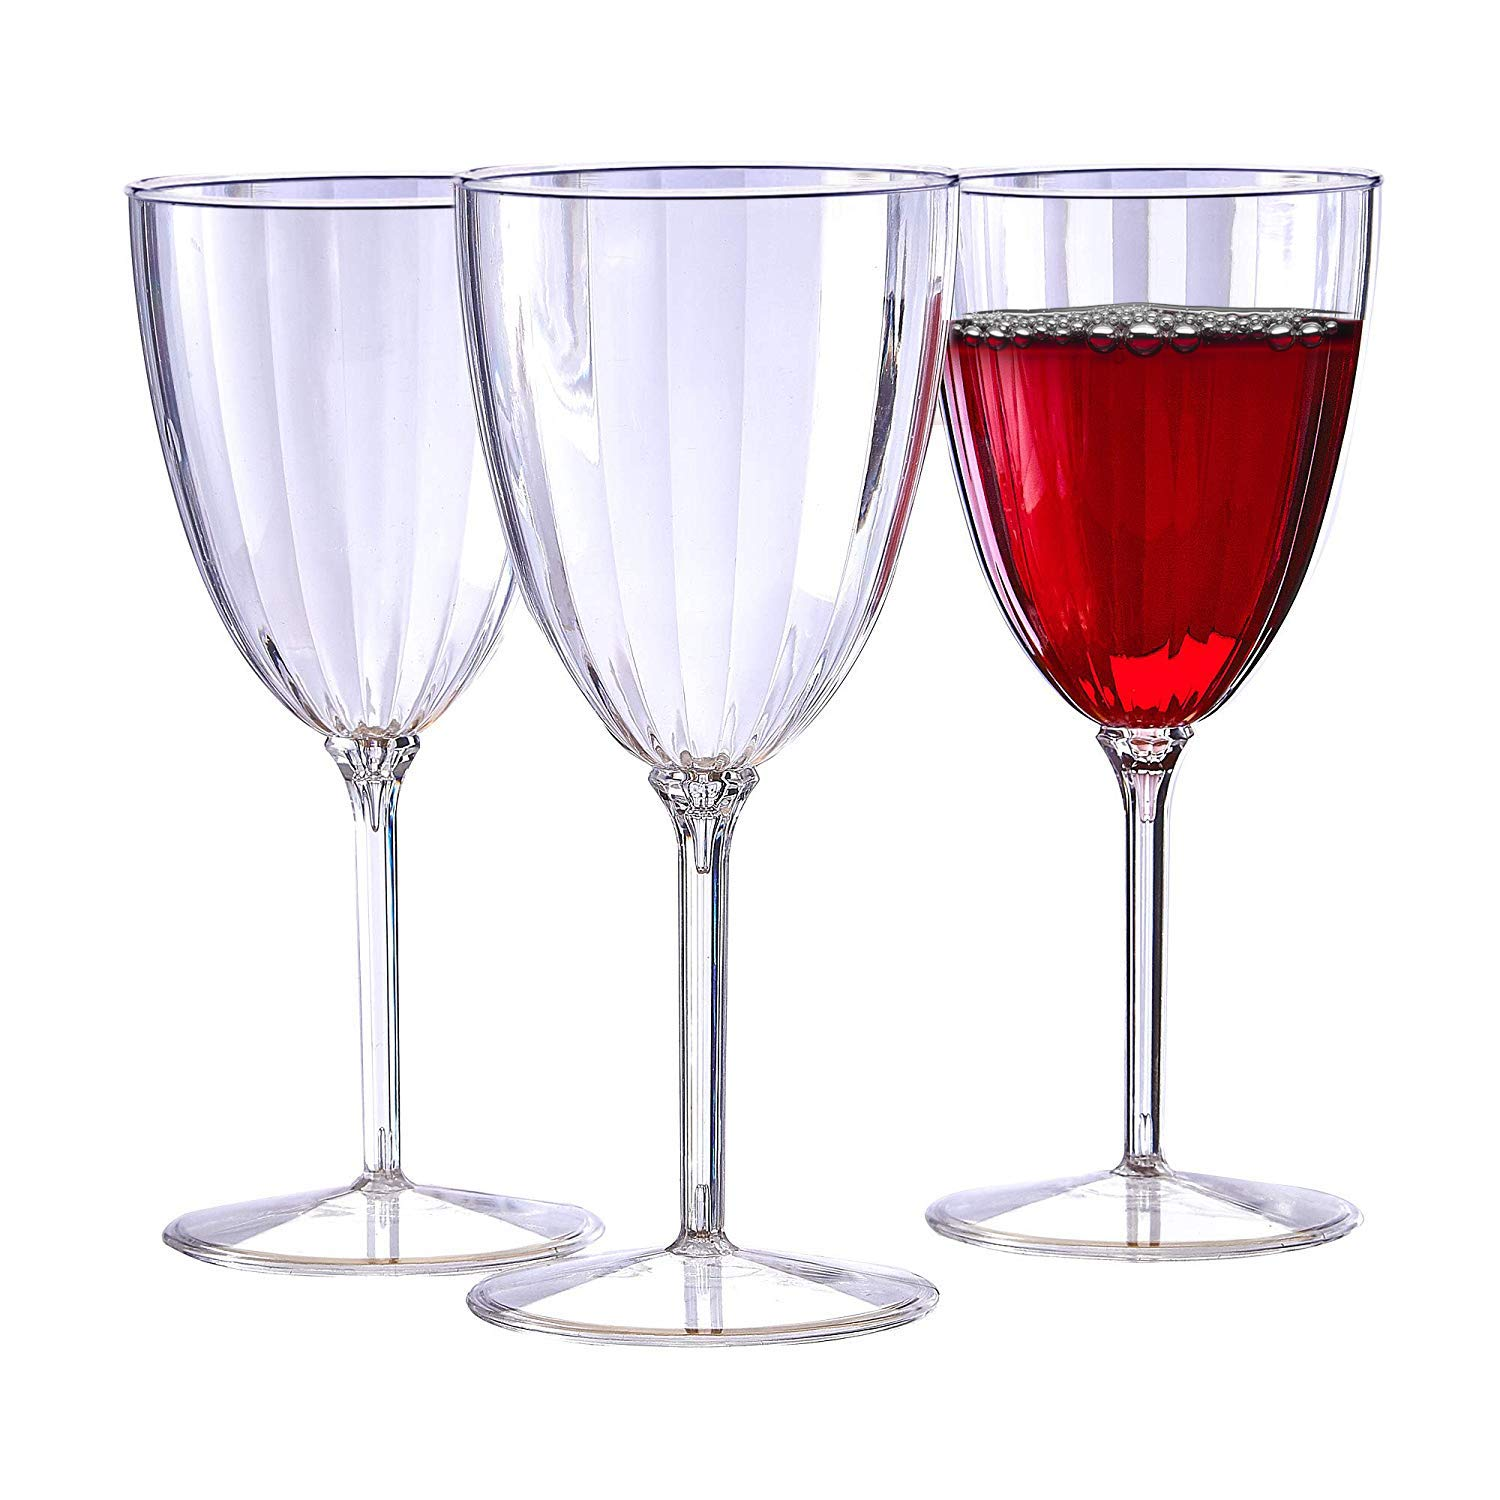 CLASSIC STEMWARE DISPOSABLE PLASTIC WINE GLASSES | Reusable Wine Cups | for Upscale Wedding and Dining | Includes 72 goblets | 8 oz by Silver Spoons